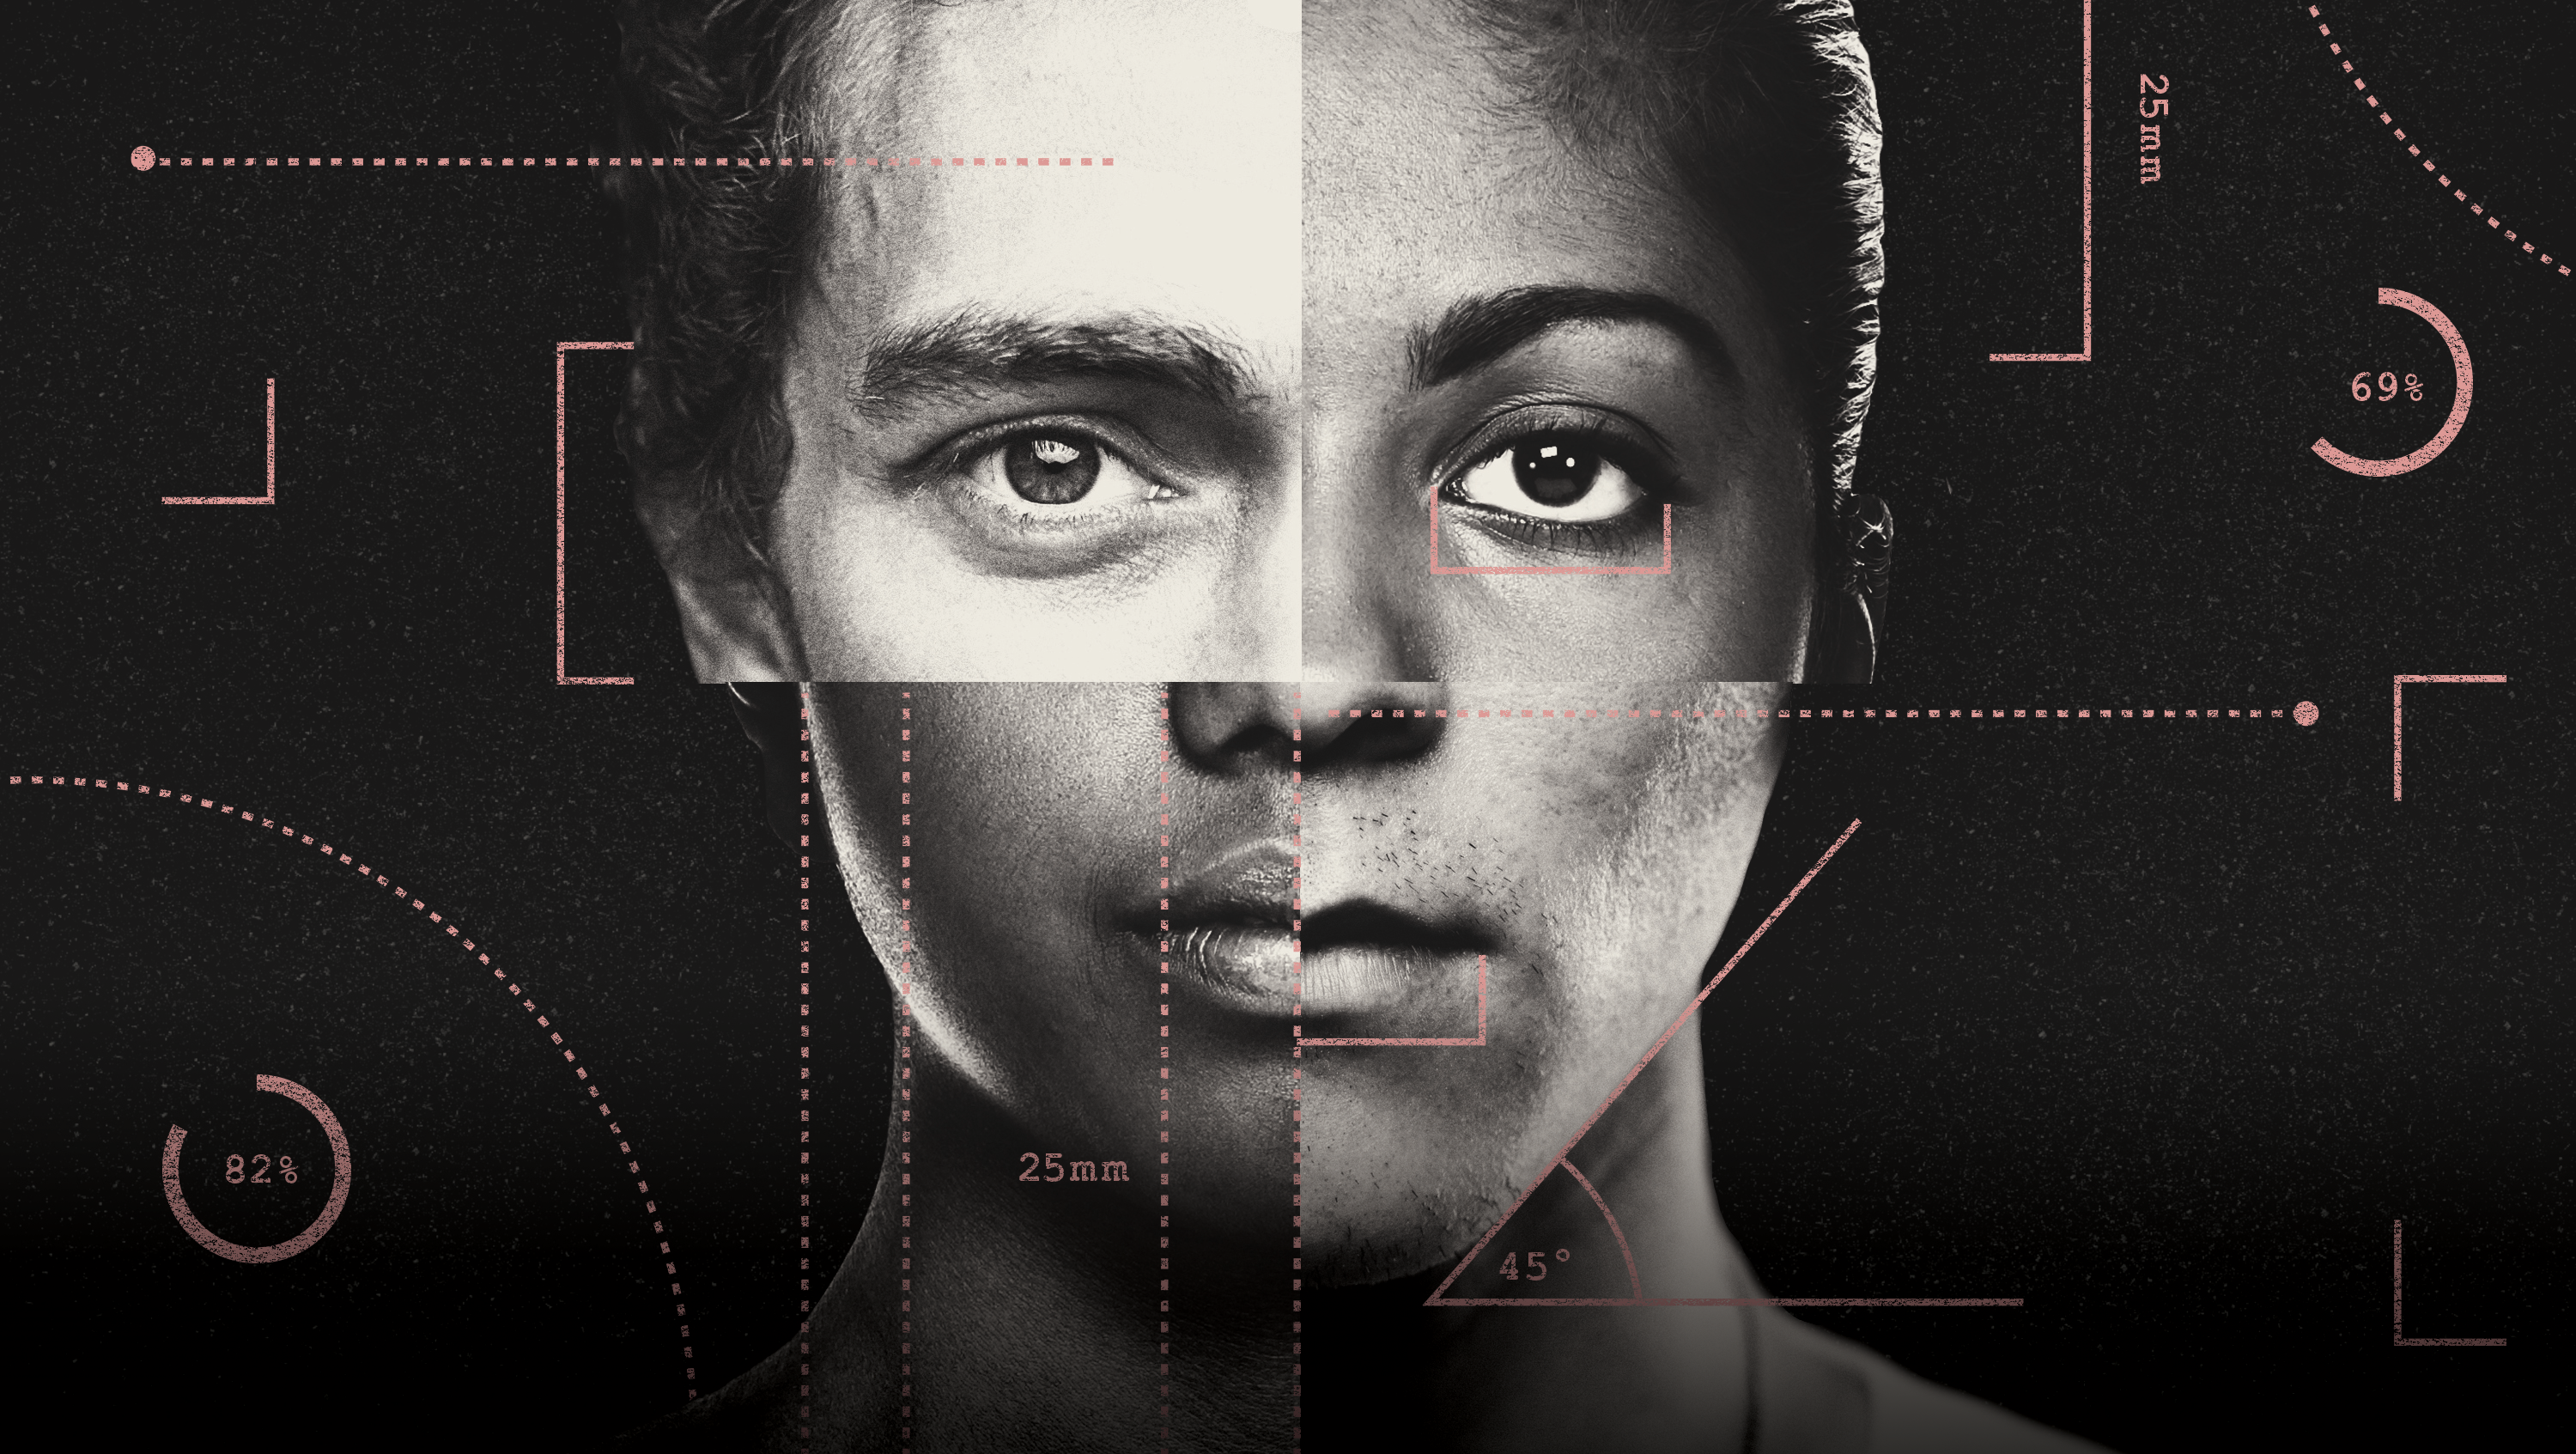 conceptural illustration of 4 quadrants showing different people's faces with details called out for scoring